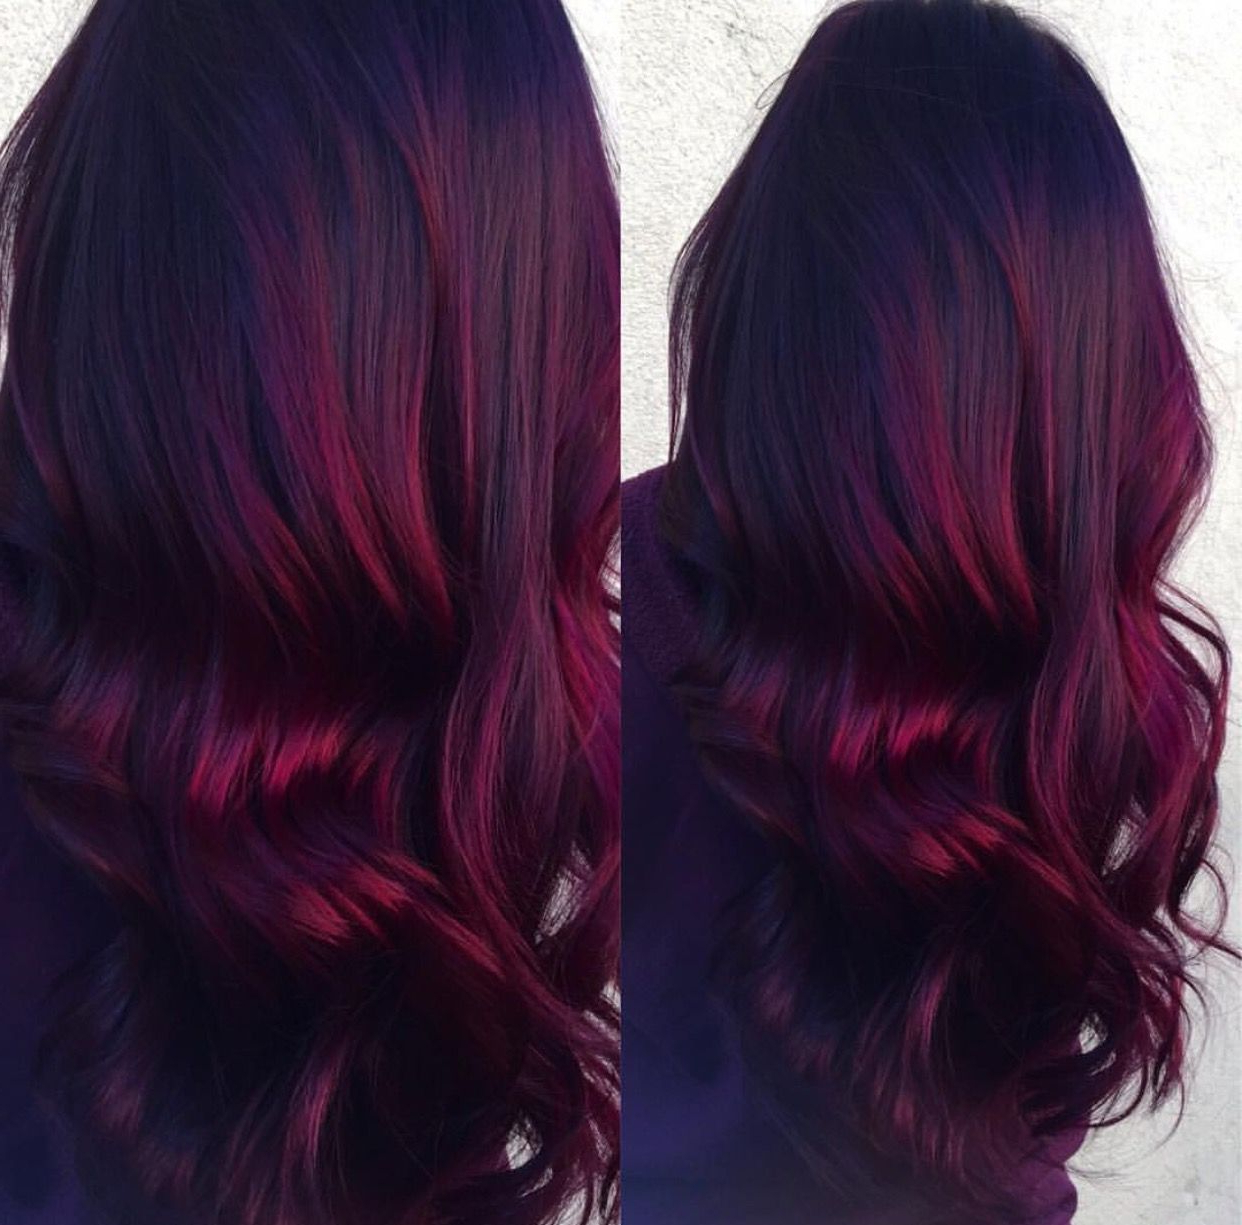 Red Velvet Balayage– Dark Roots With Vibrant Burgundy In Burgundy Balayage On Dark Hairstyles (View 11 of 20)